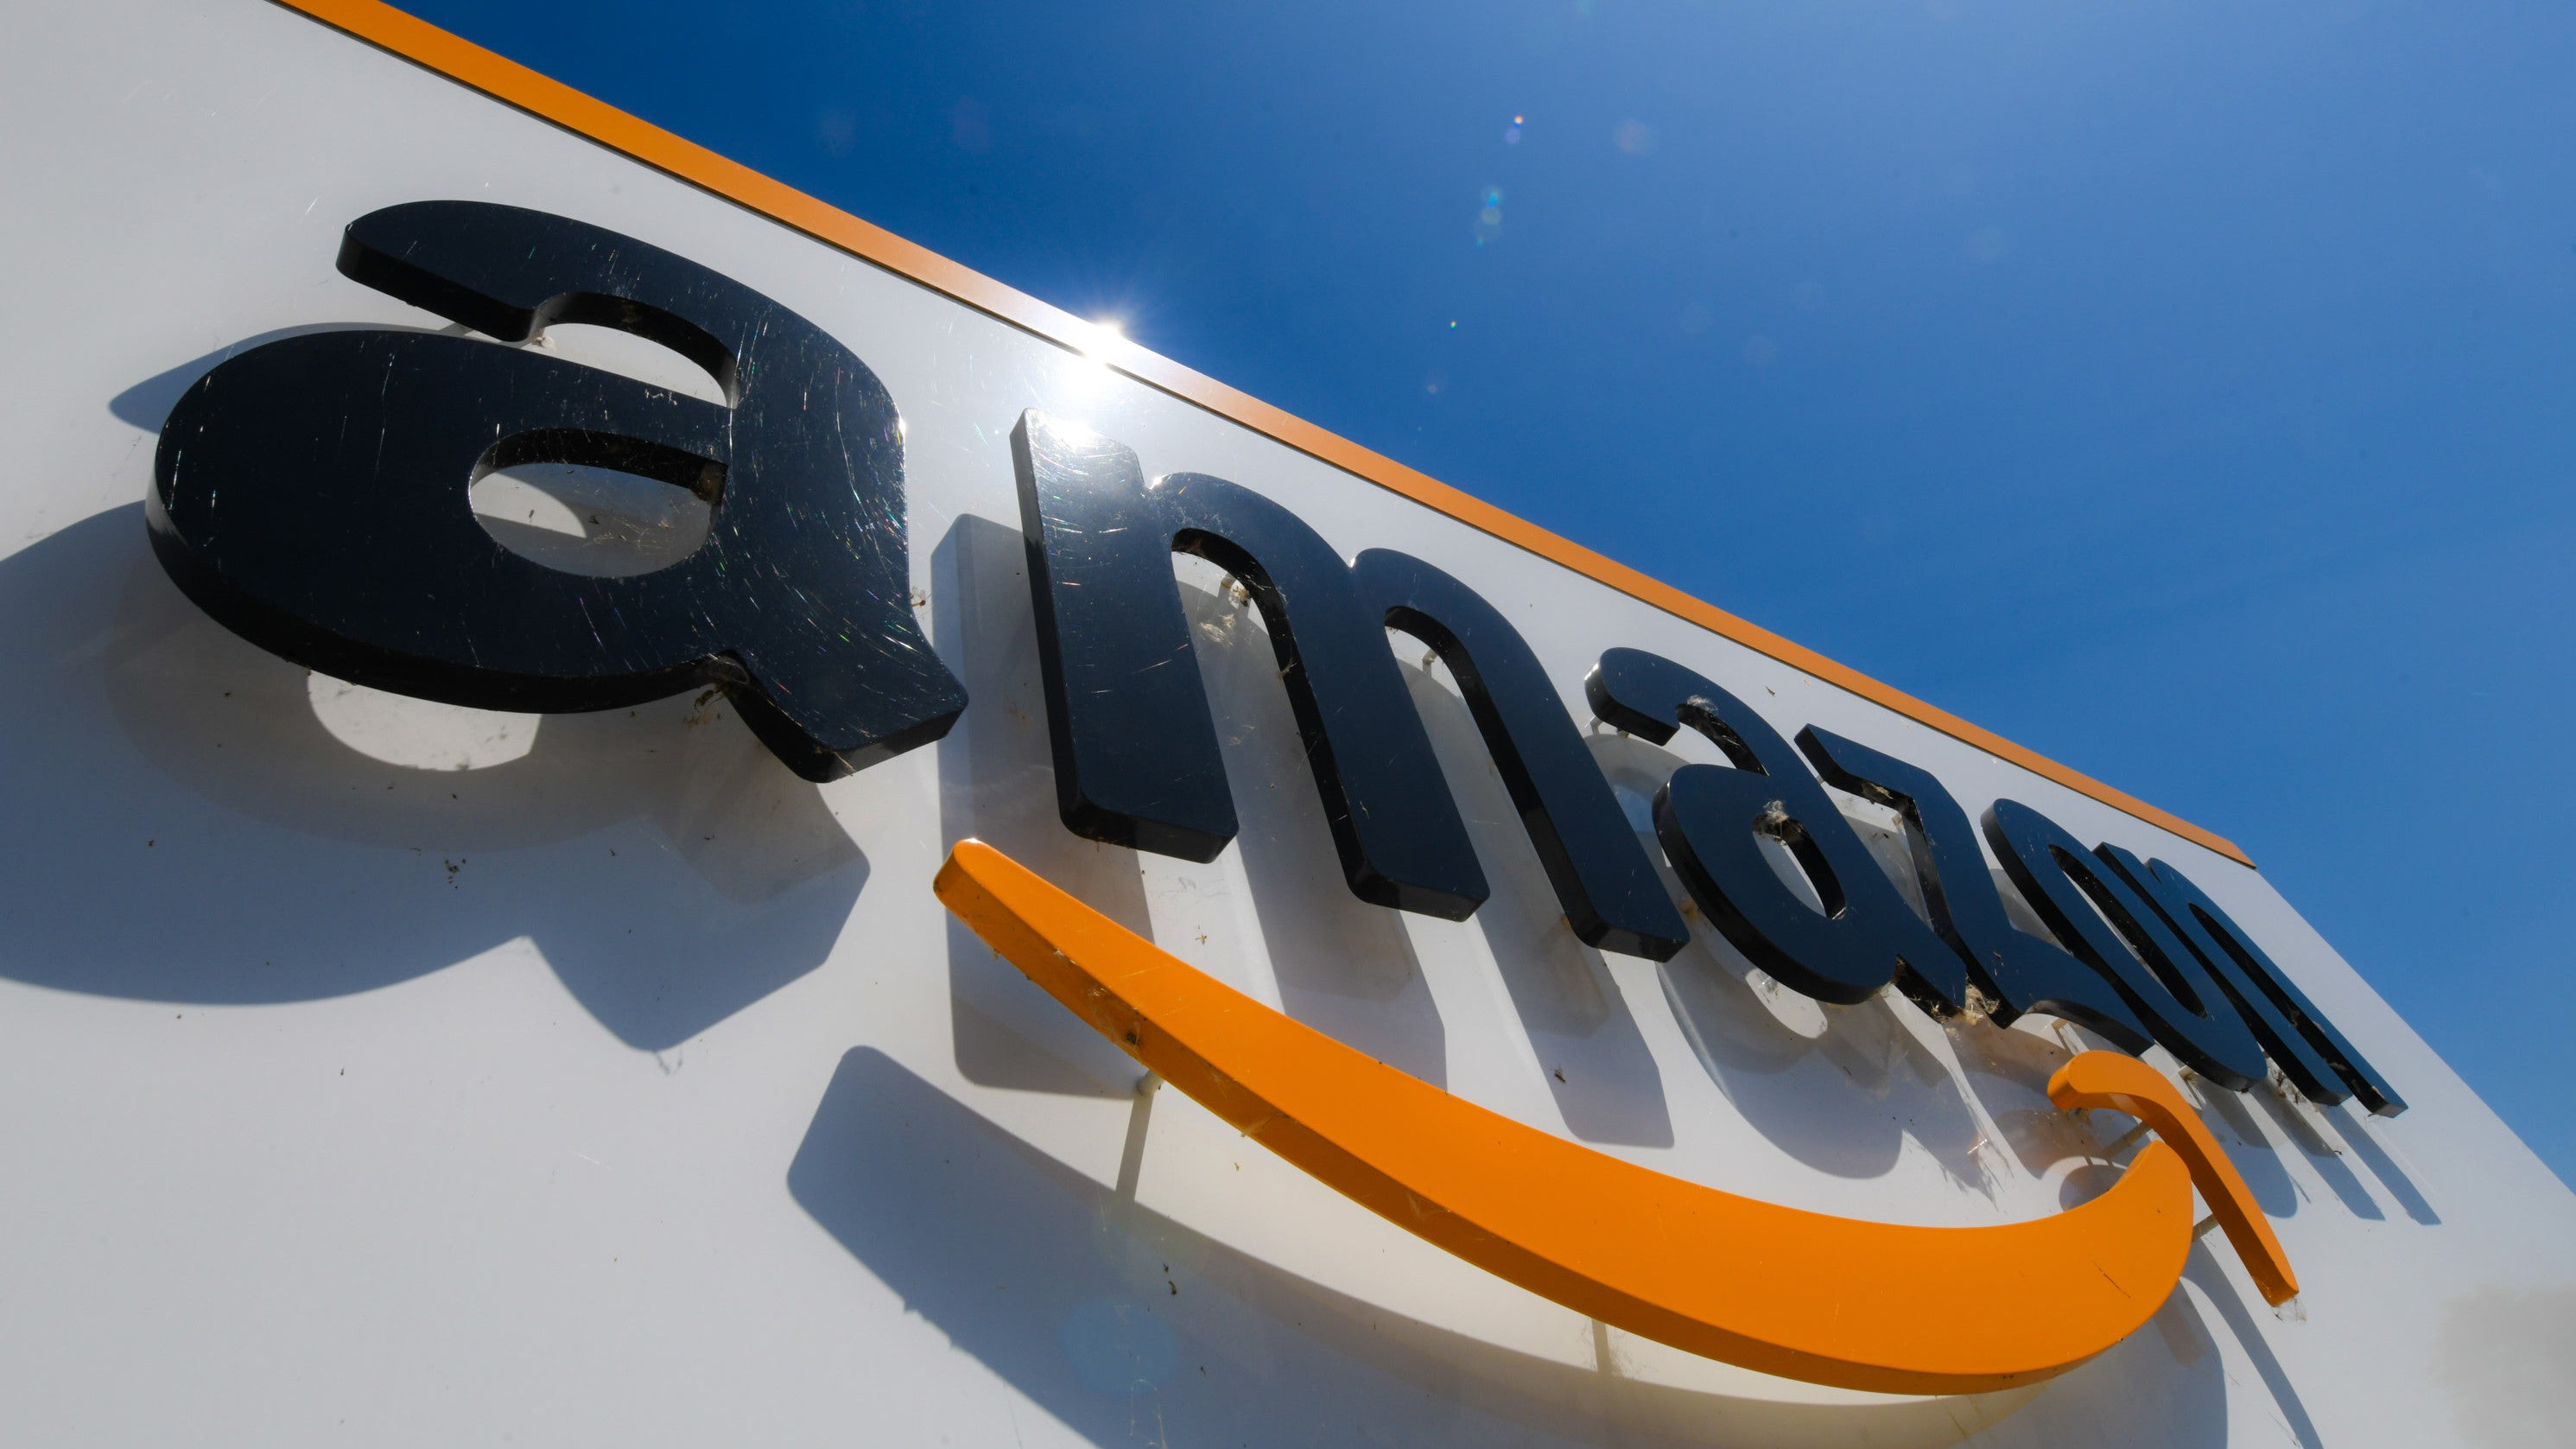 U.S. Lawmakers Demand Amazon Get Serious About Worker Safety Amid Covid-19 Pandemic